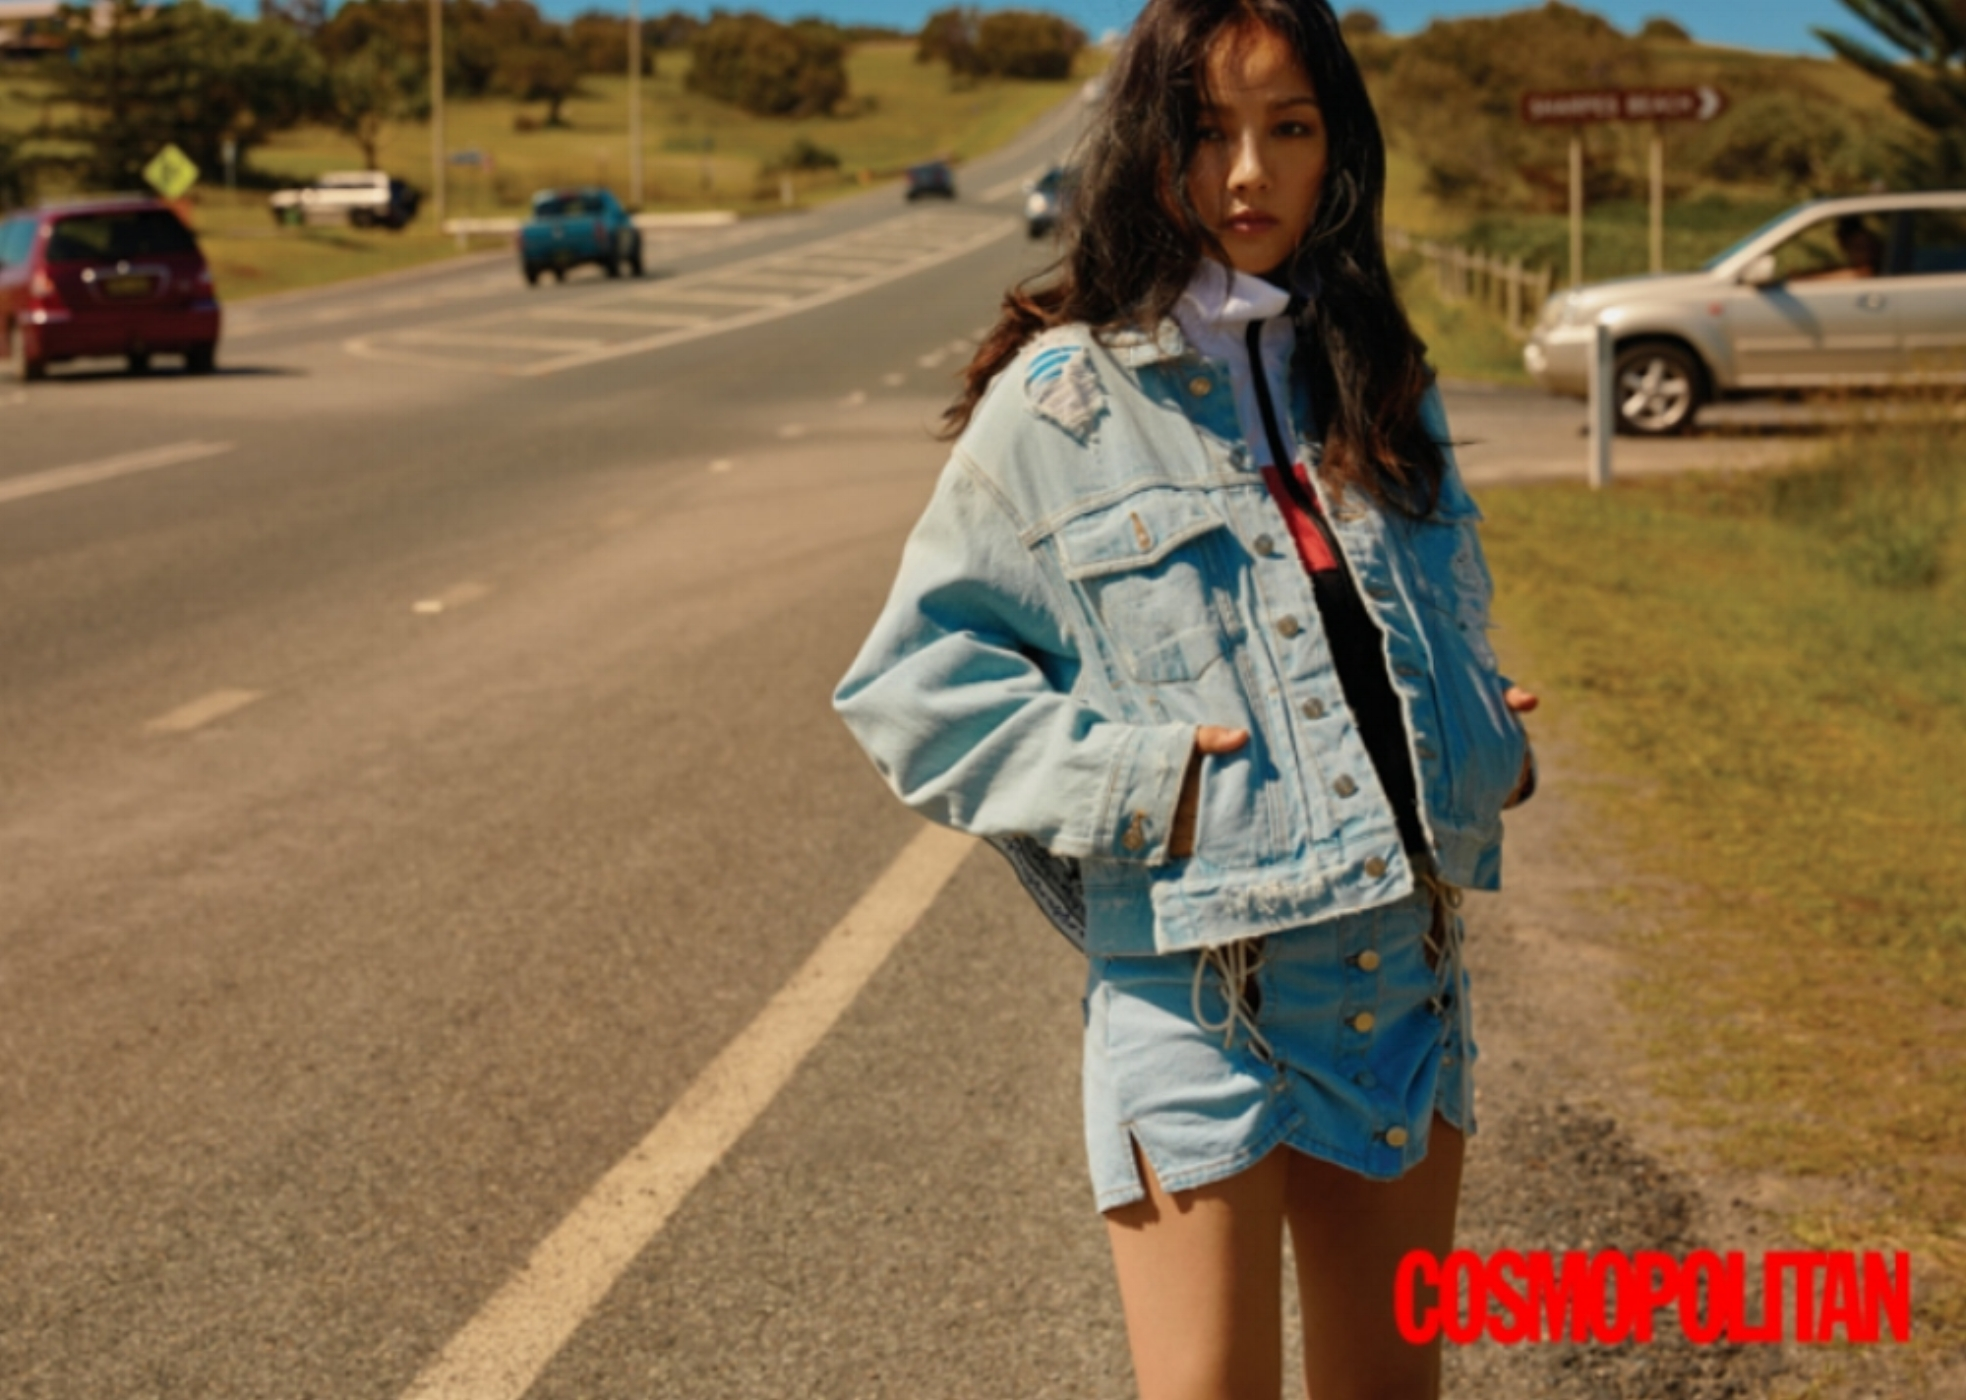 COSMOPOLITAN   Project Name:  The Endless Road   Casting:  Lee Hyori   Creative Director:  Sophia Ji-Hye, Kang   Location:  Brisbane, Australia   Production Service:  KNT Production